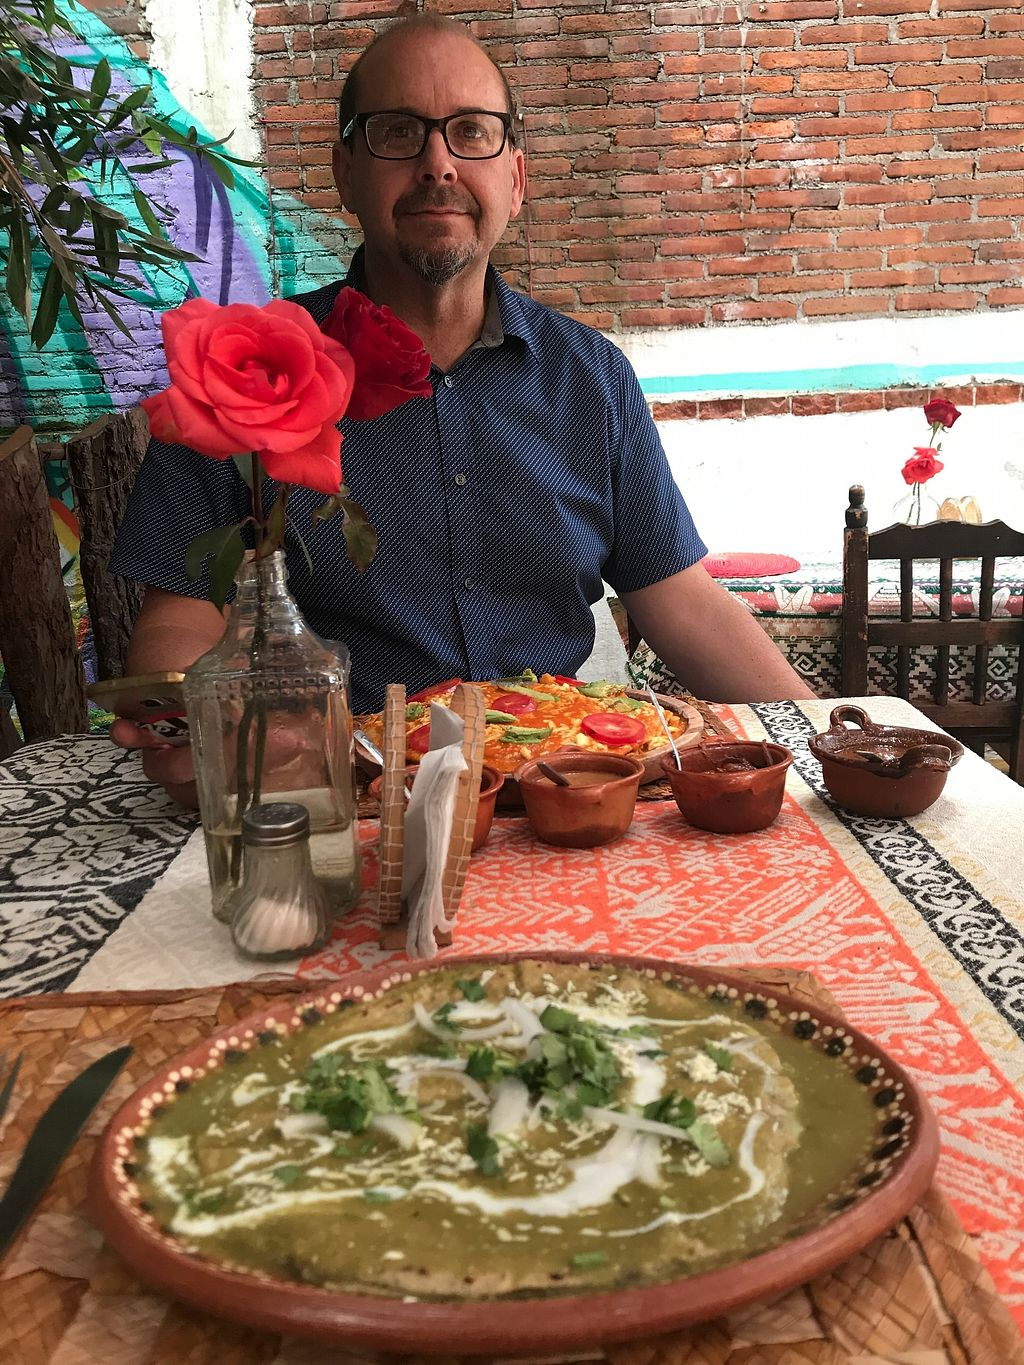 """Photo of Koatlikue Pachamama  by <a href=""""/members/profile/Serenamuse"""">Serenamuse</a> <br/>Enchiladas Verdes. Made with corn tortillas (wonderful fresh made) filled with refried beans, topped with amazing fairly mild green enchilada sauce. Can ask to hold the creama (a sprinkling of sour cream on top).  <br/> July 24, 2017  - <a href='/contact/abuse/image/26158/284397'>Report</a>"""